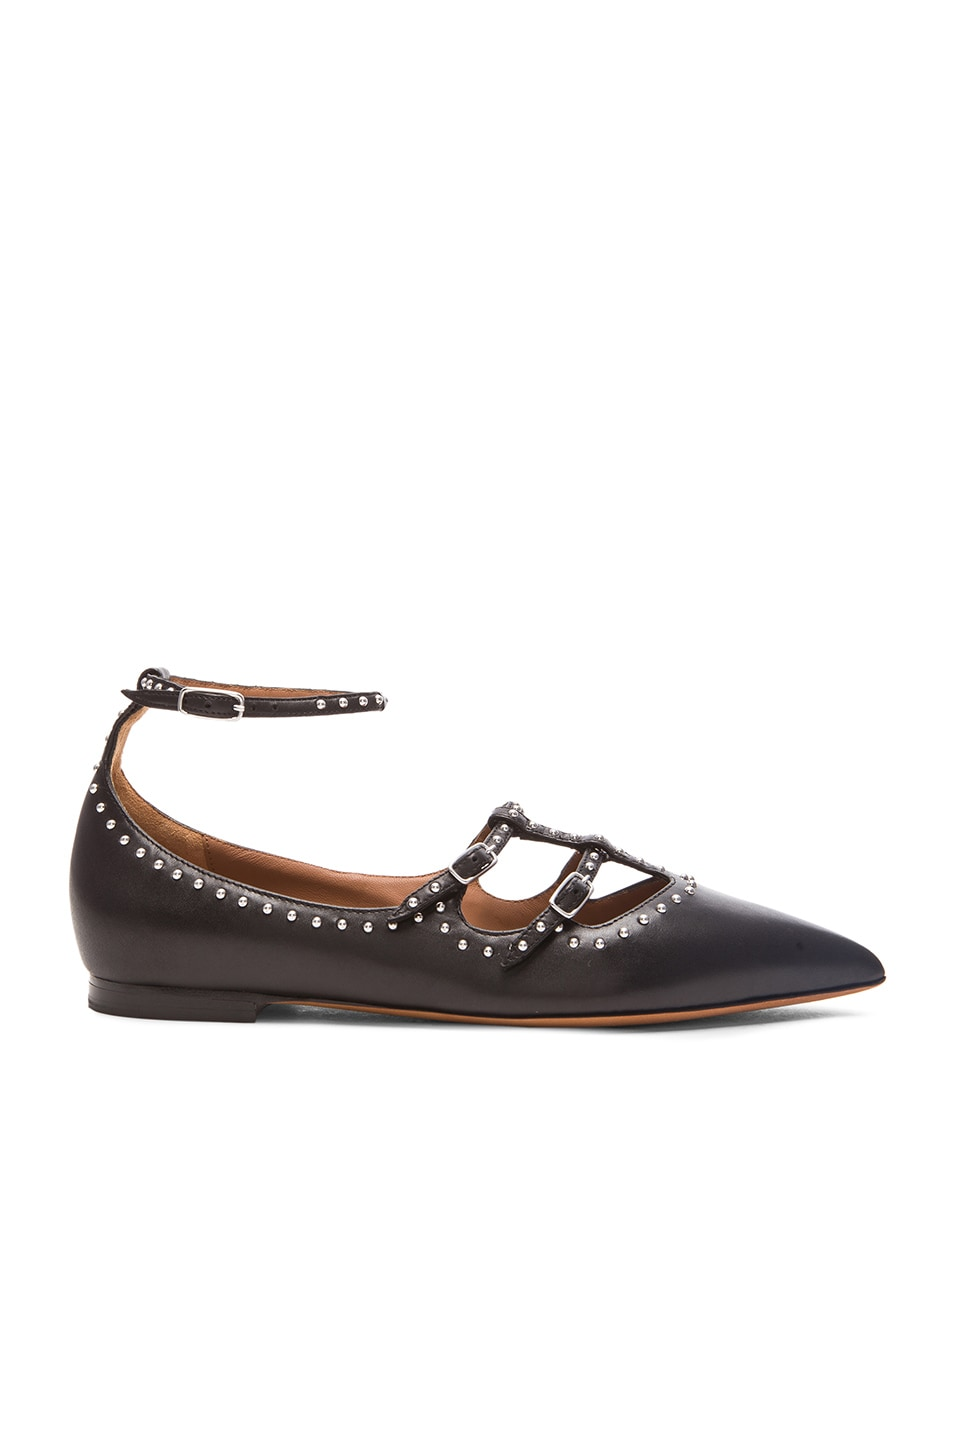 cheap collections clearance outlet locations GIVENCHY Ballet flats 2014 new cheap online cheap official site YJOya